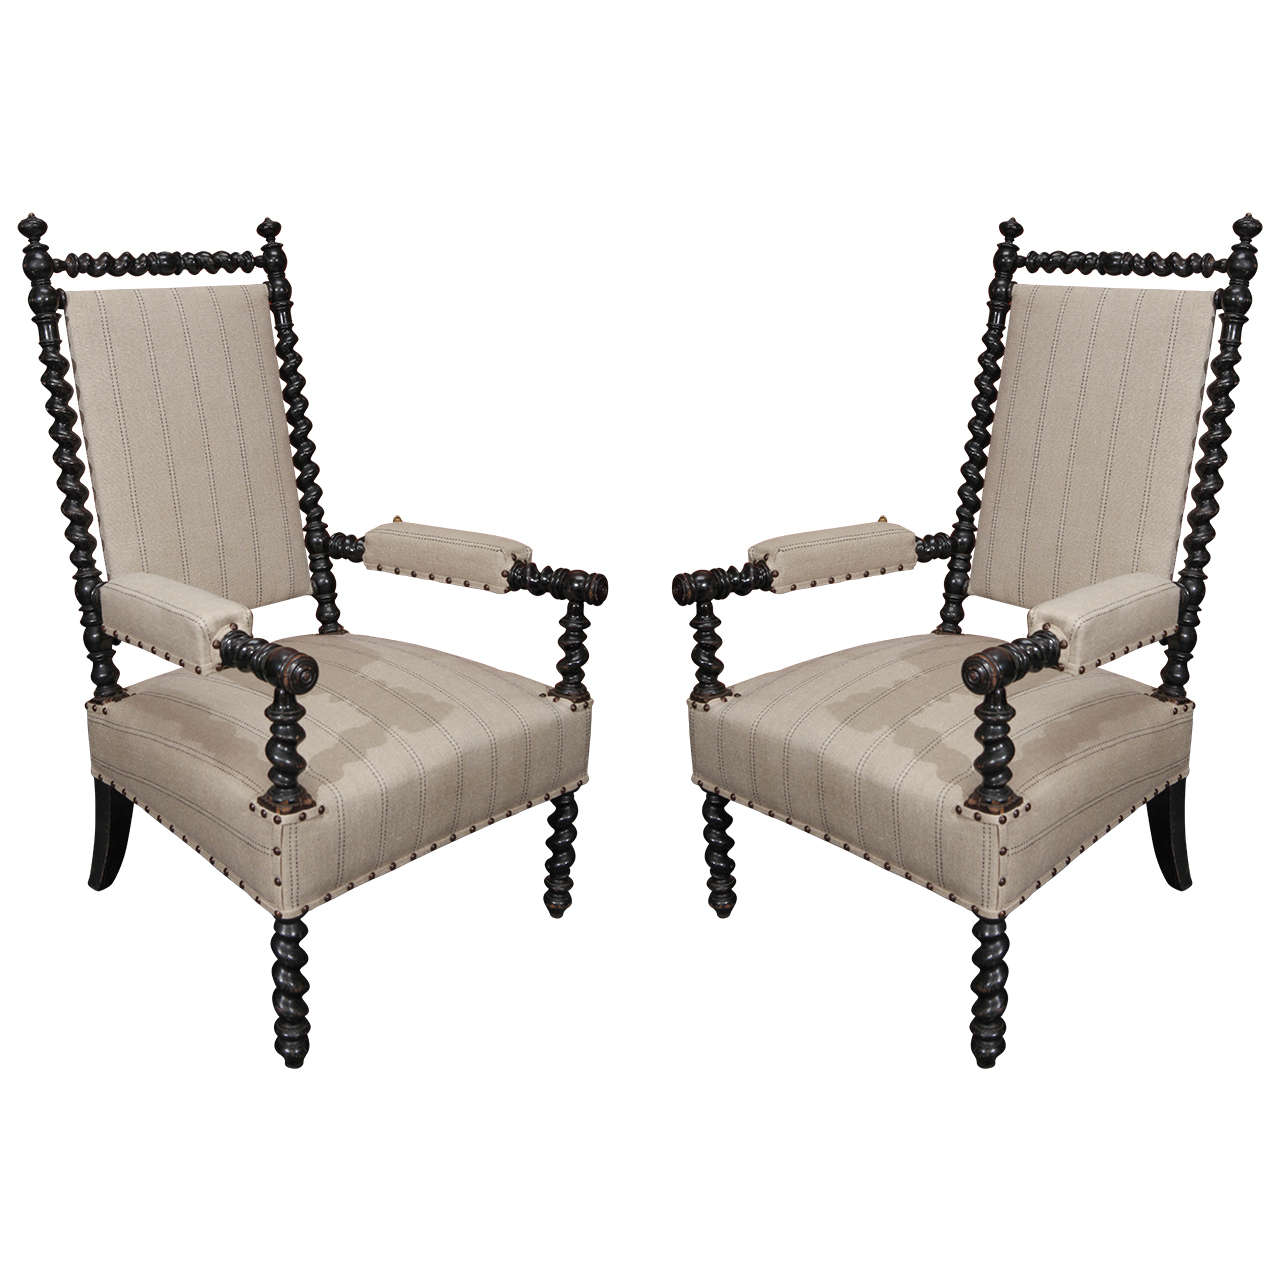 pair of 19th century ebonized bobbin chairs with arms at 1stdibs